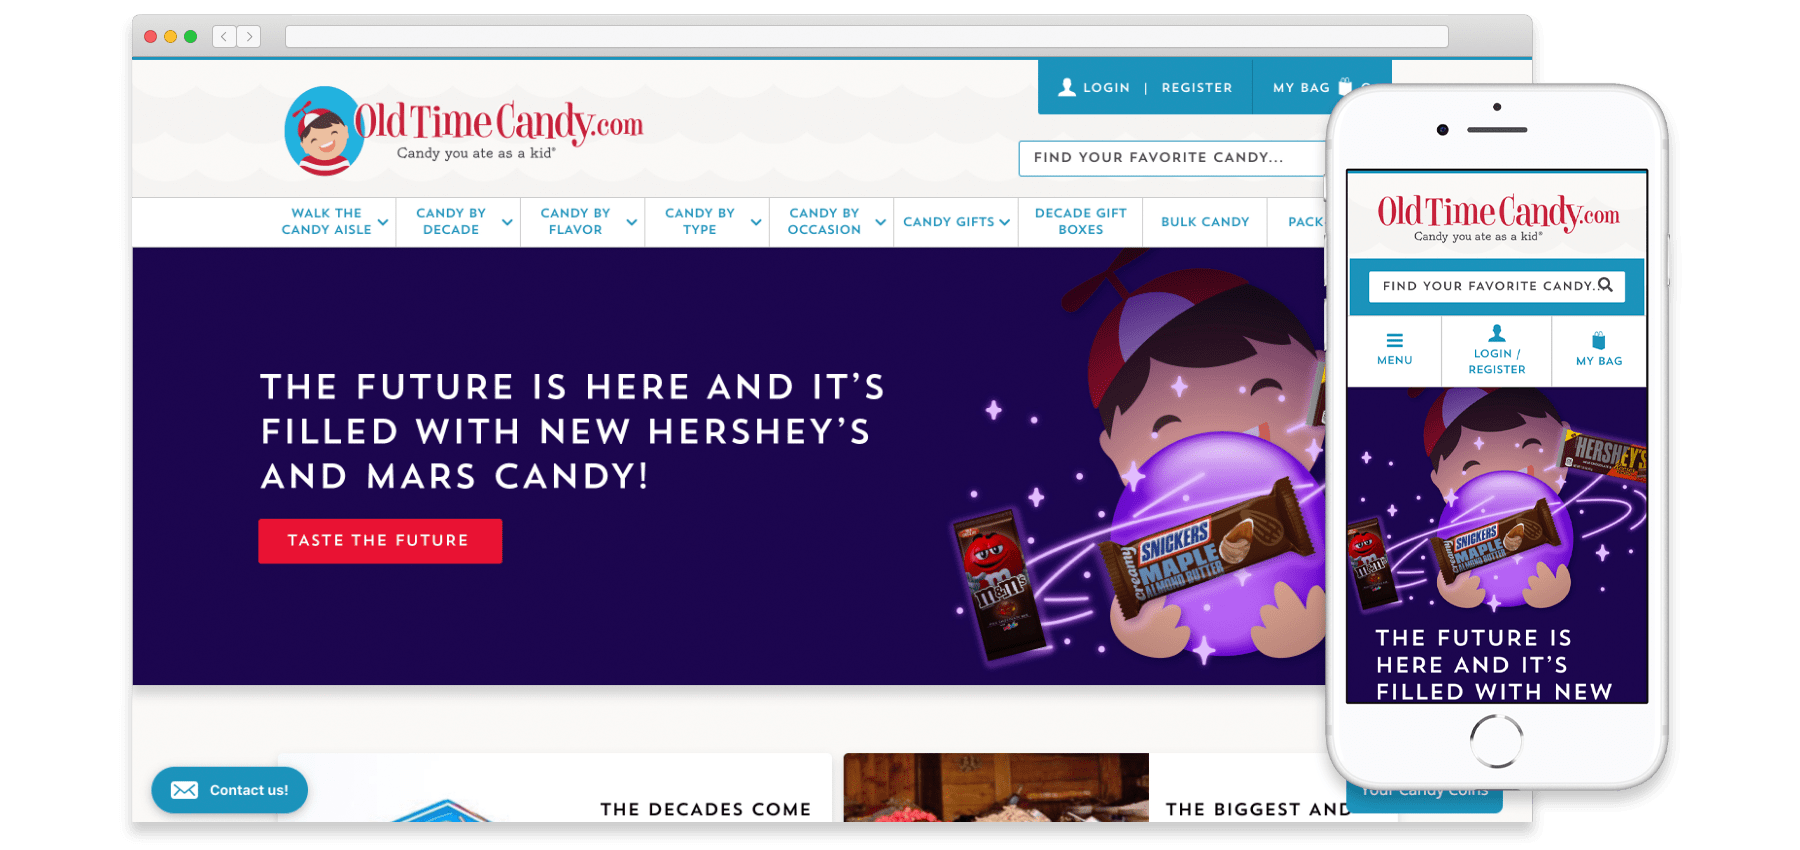 A mockup of the OldTimeCandy.com website on desktop and mobile sizes.